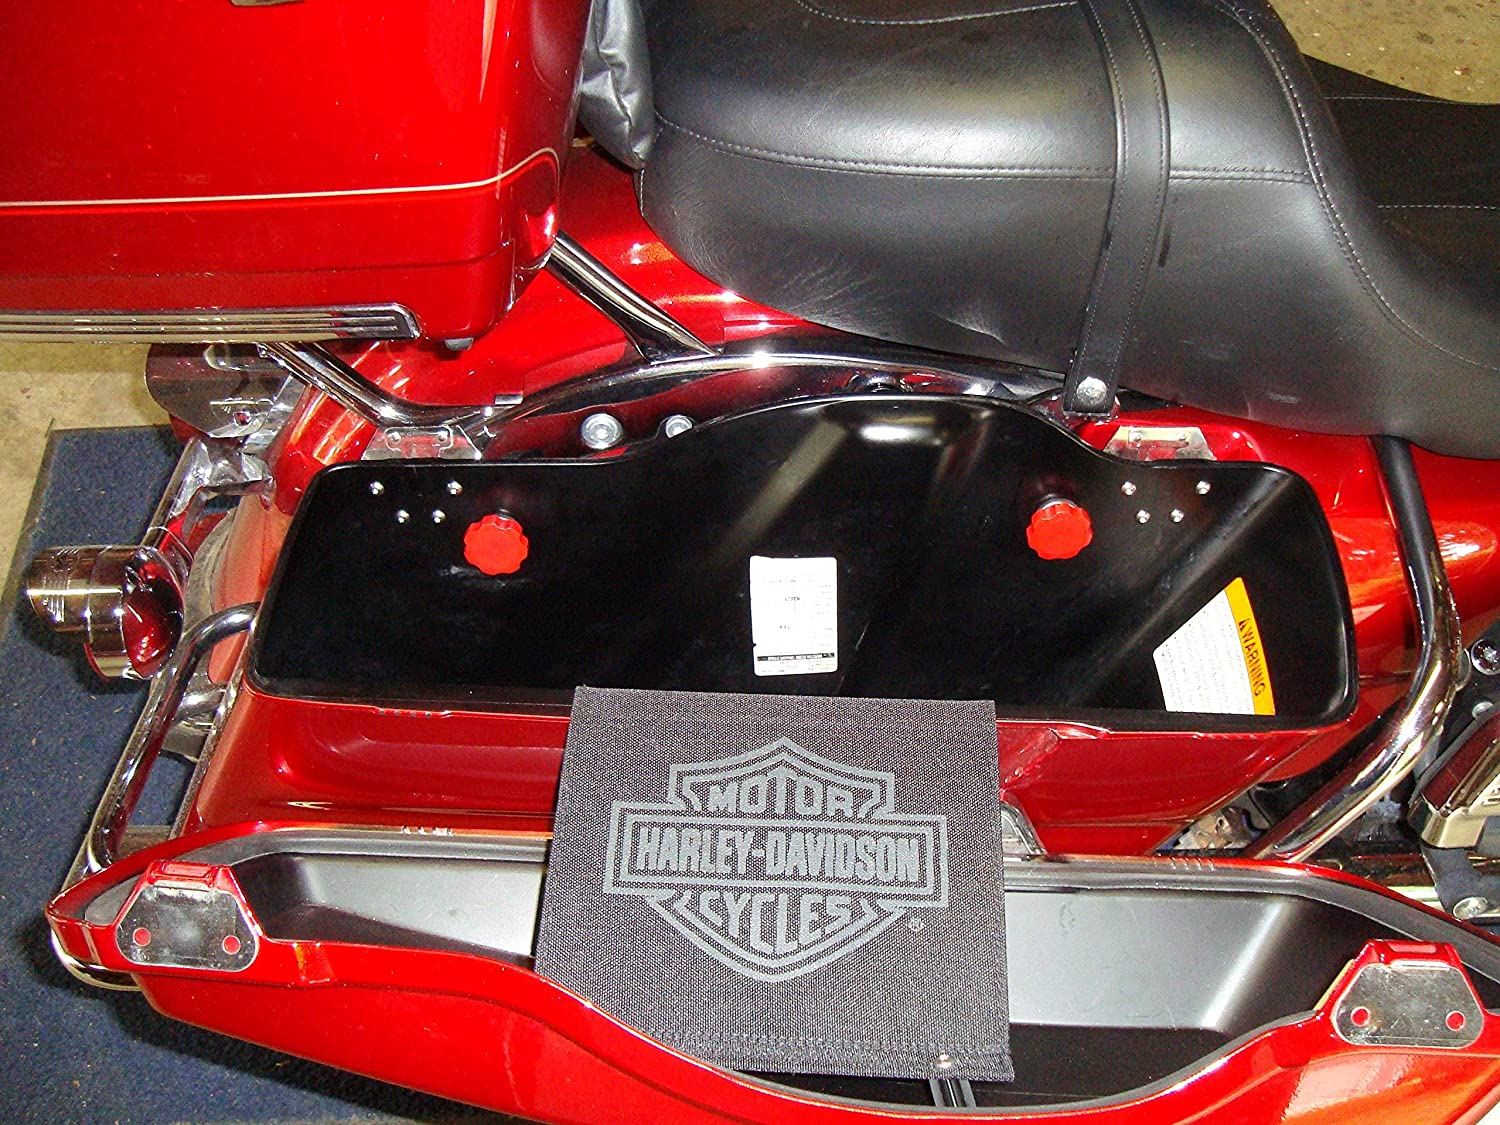 HDsmallPARTS//LocEzy Red 2014-2015 Saddlebag Mounting Hardware//Knobs are replacement//compatible for Saddlebag Quick Release Pins on Harley-Davidson Touring Motorcycles